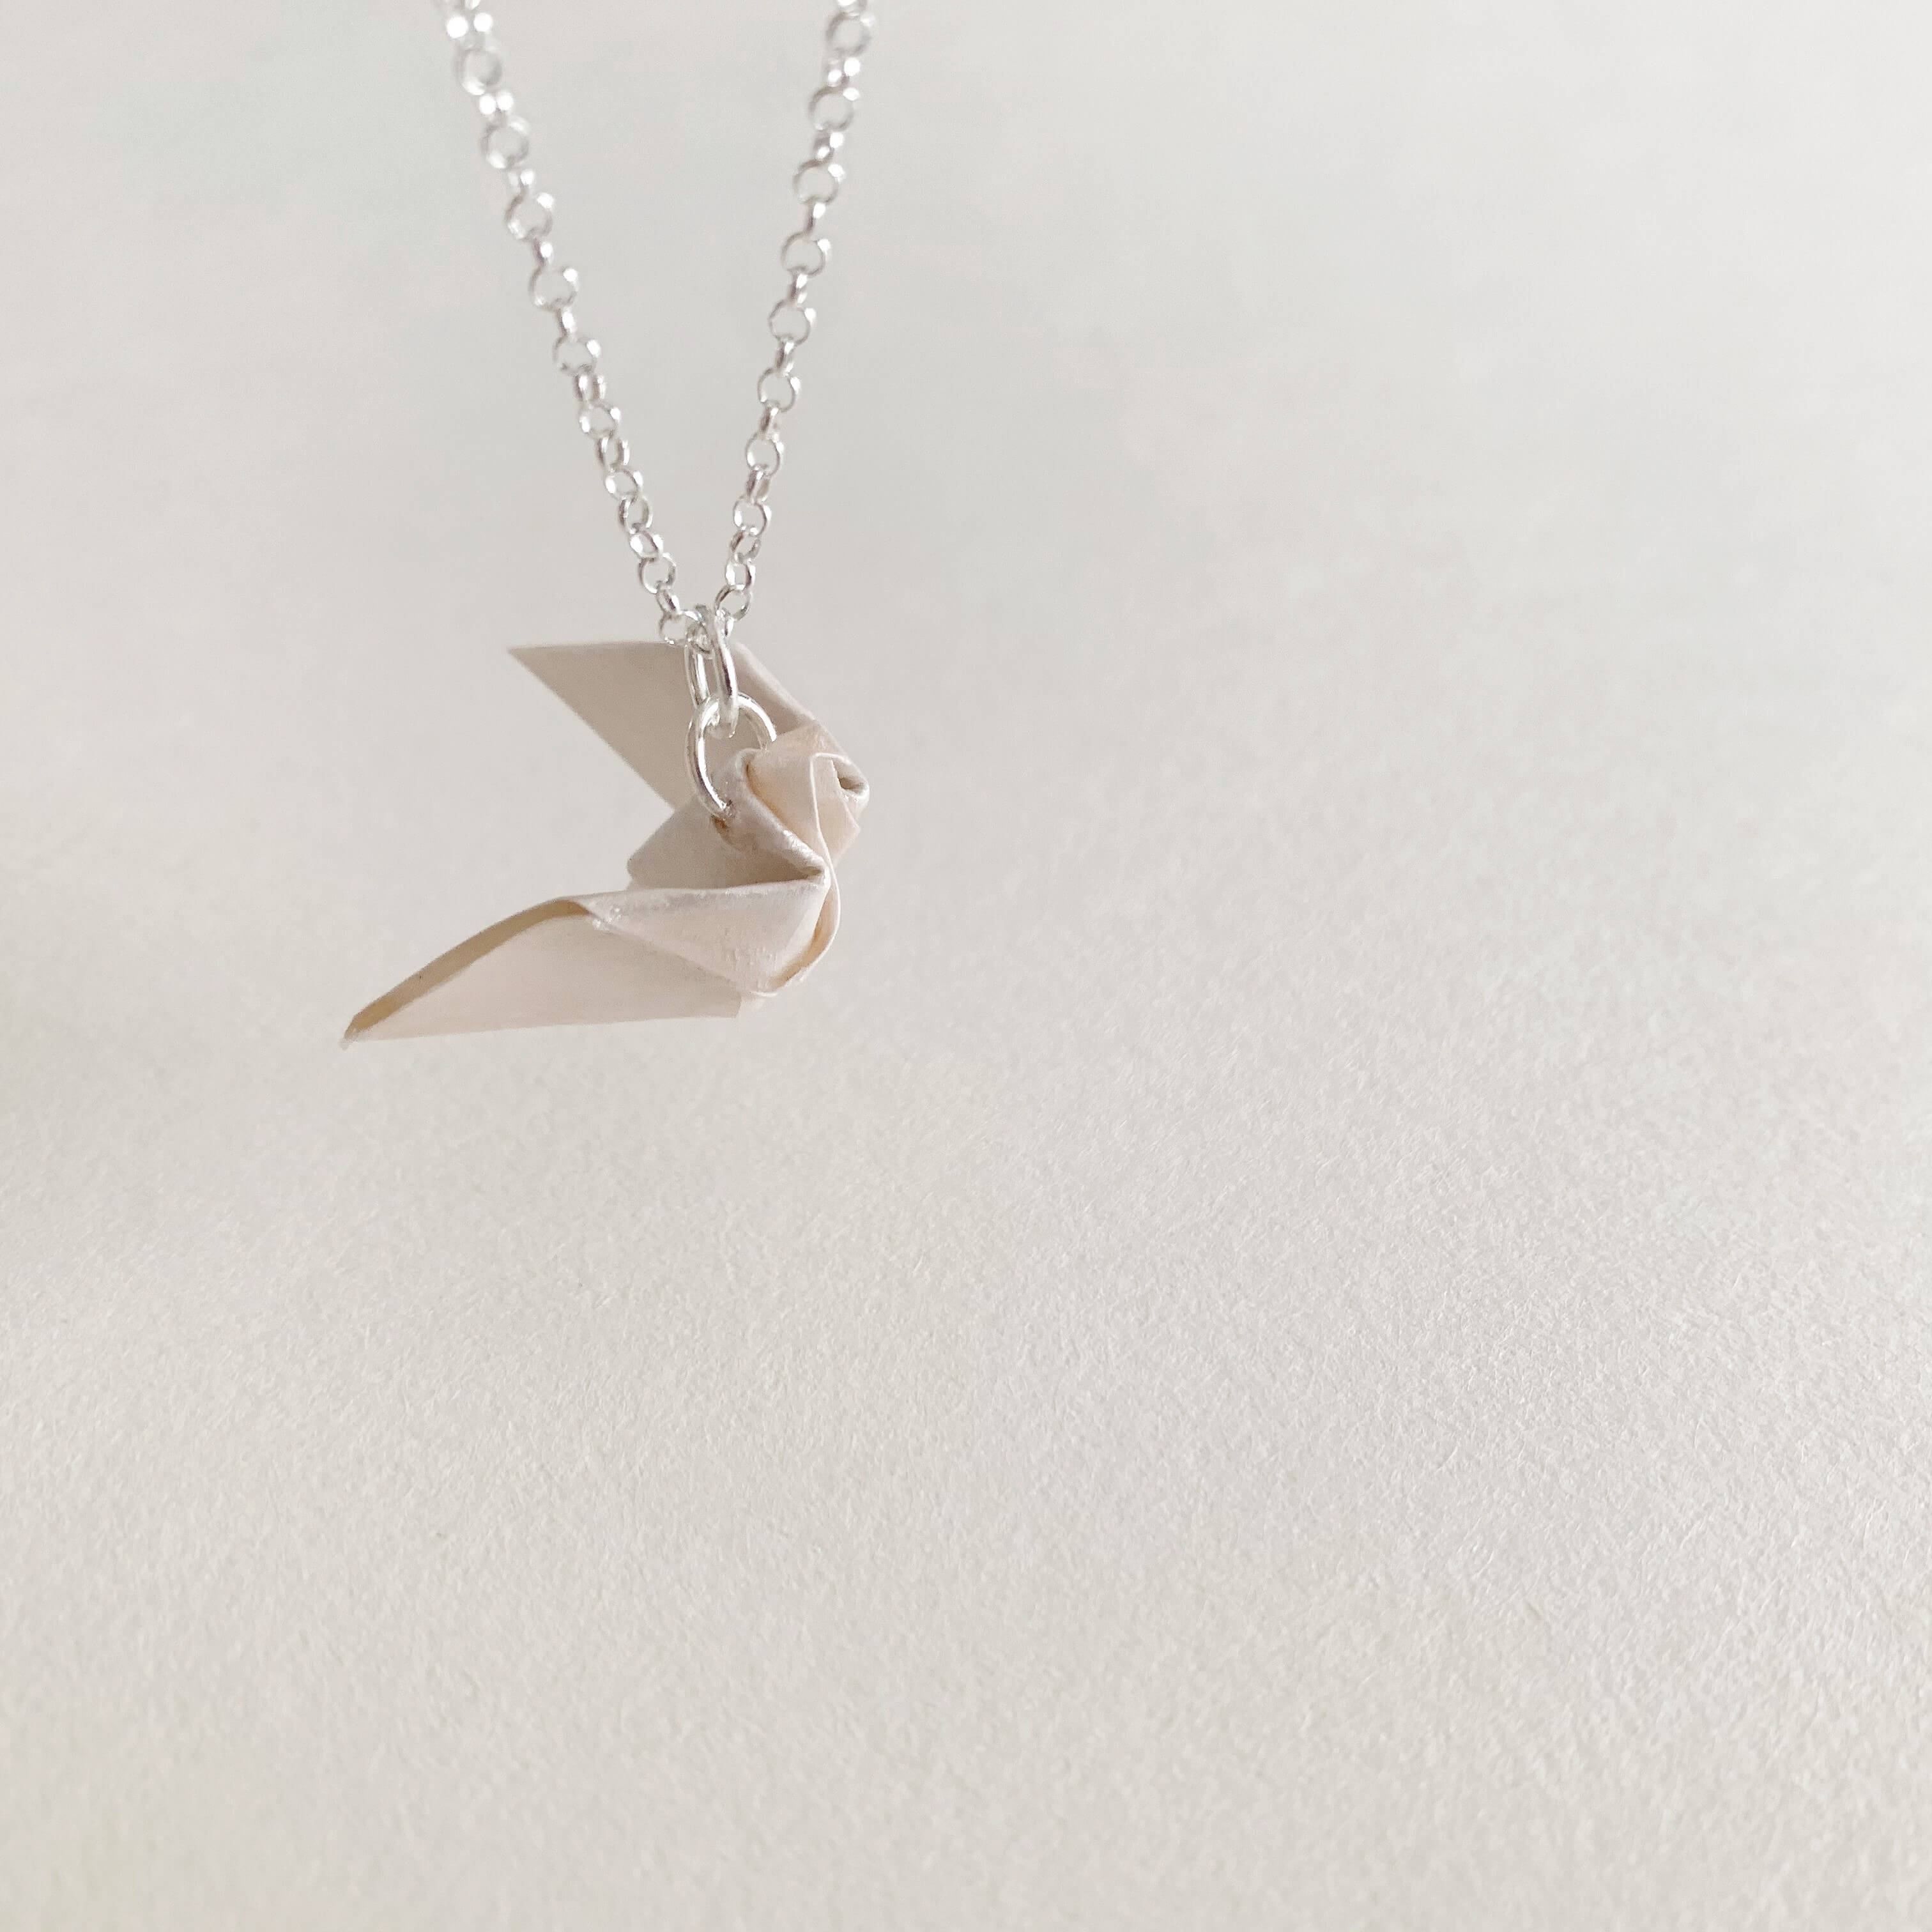 solidarity origami dove silver necklace